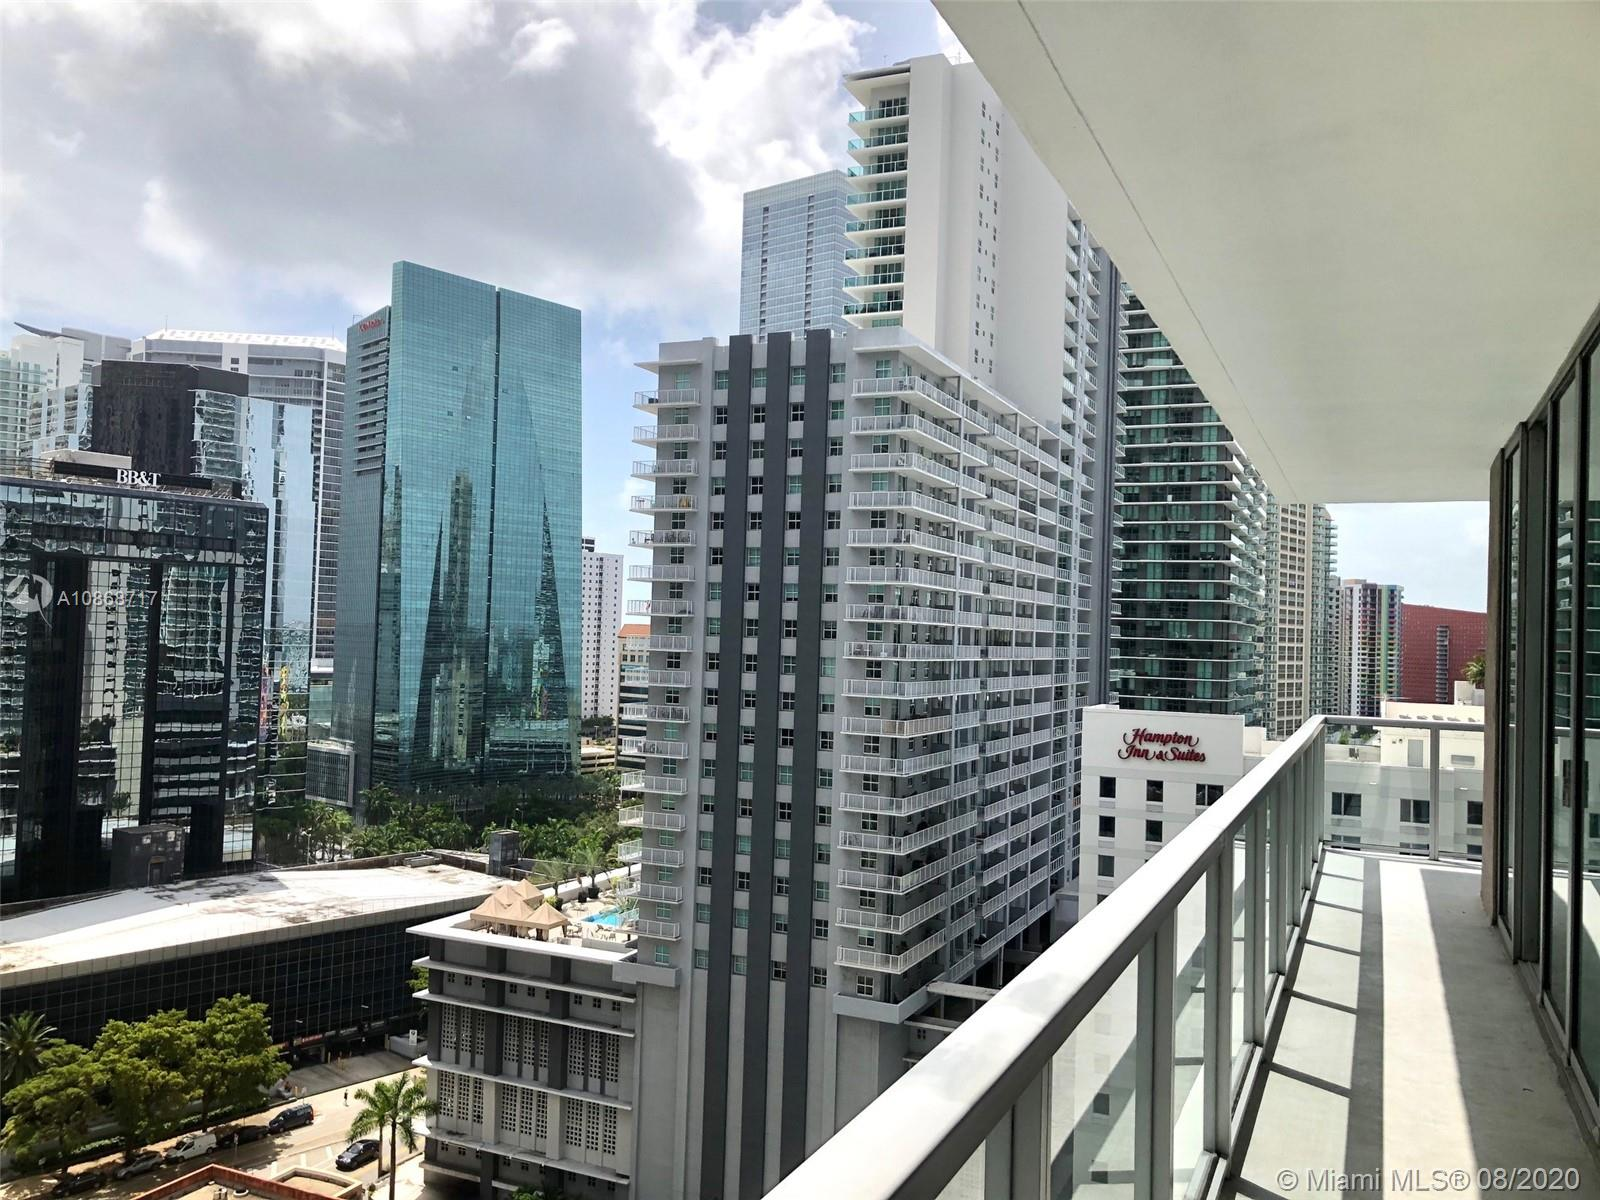 Axis on Brickell North Tower #2019-N - 1111 SW 1st Ave #2019-N, Miami, FL 33130